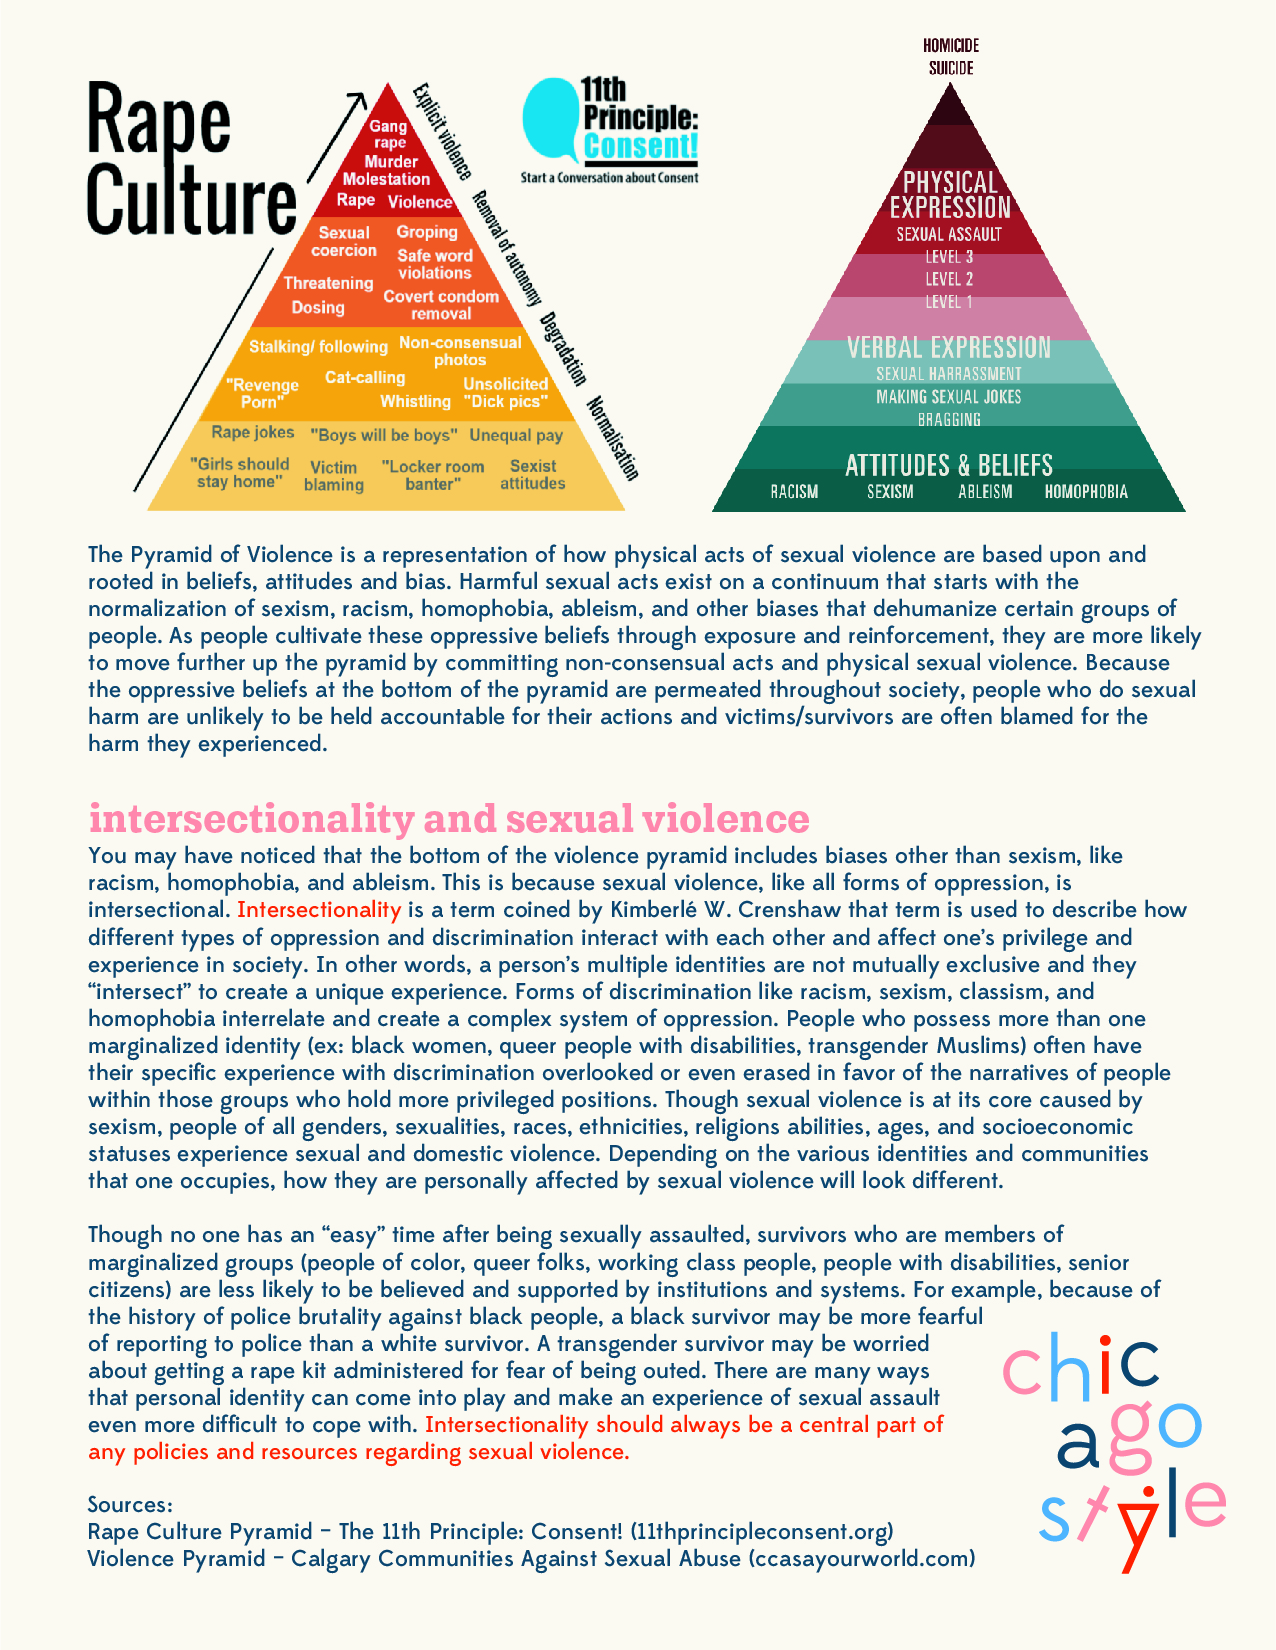 CS Consent Culture Resource Guide-02.jpg